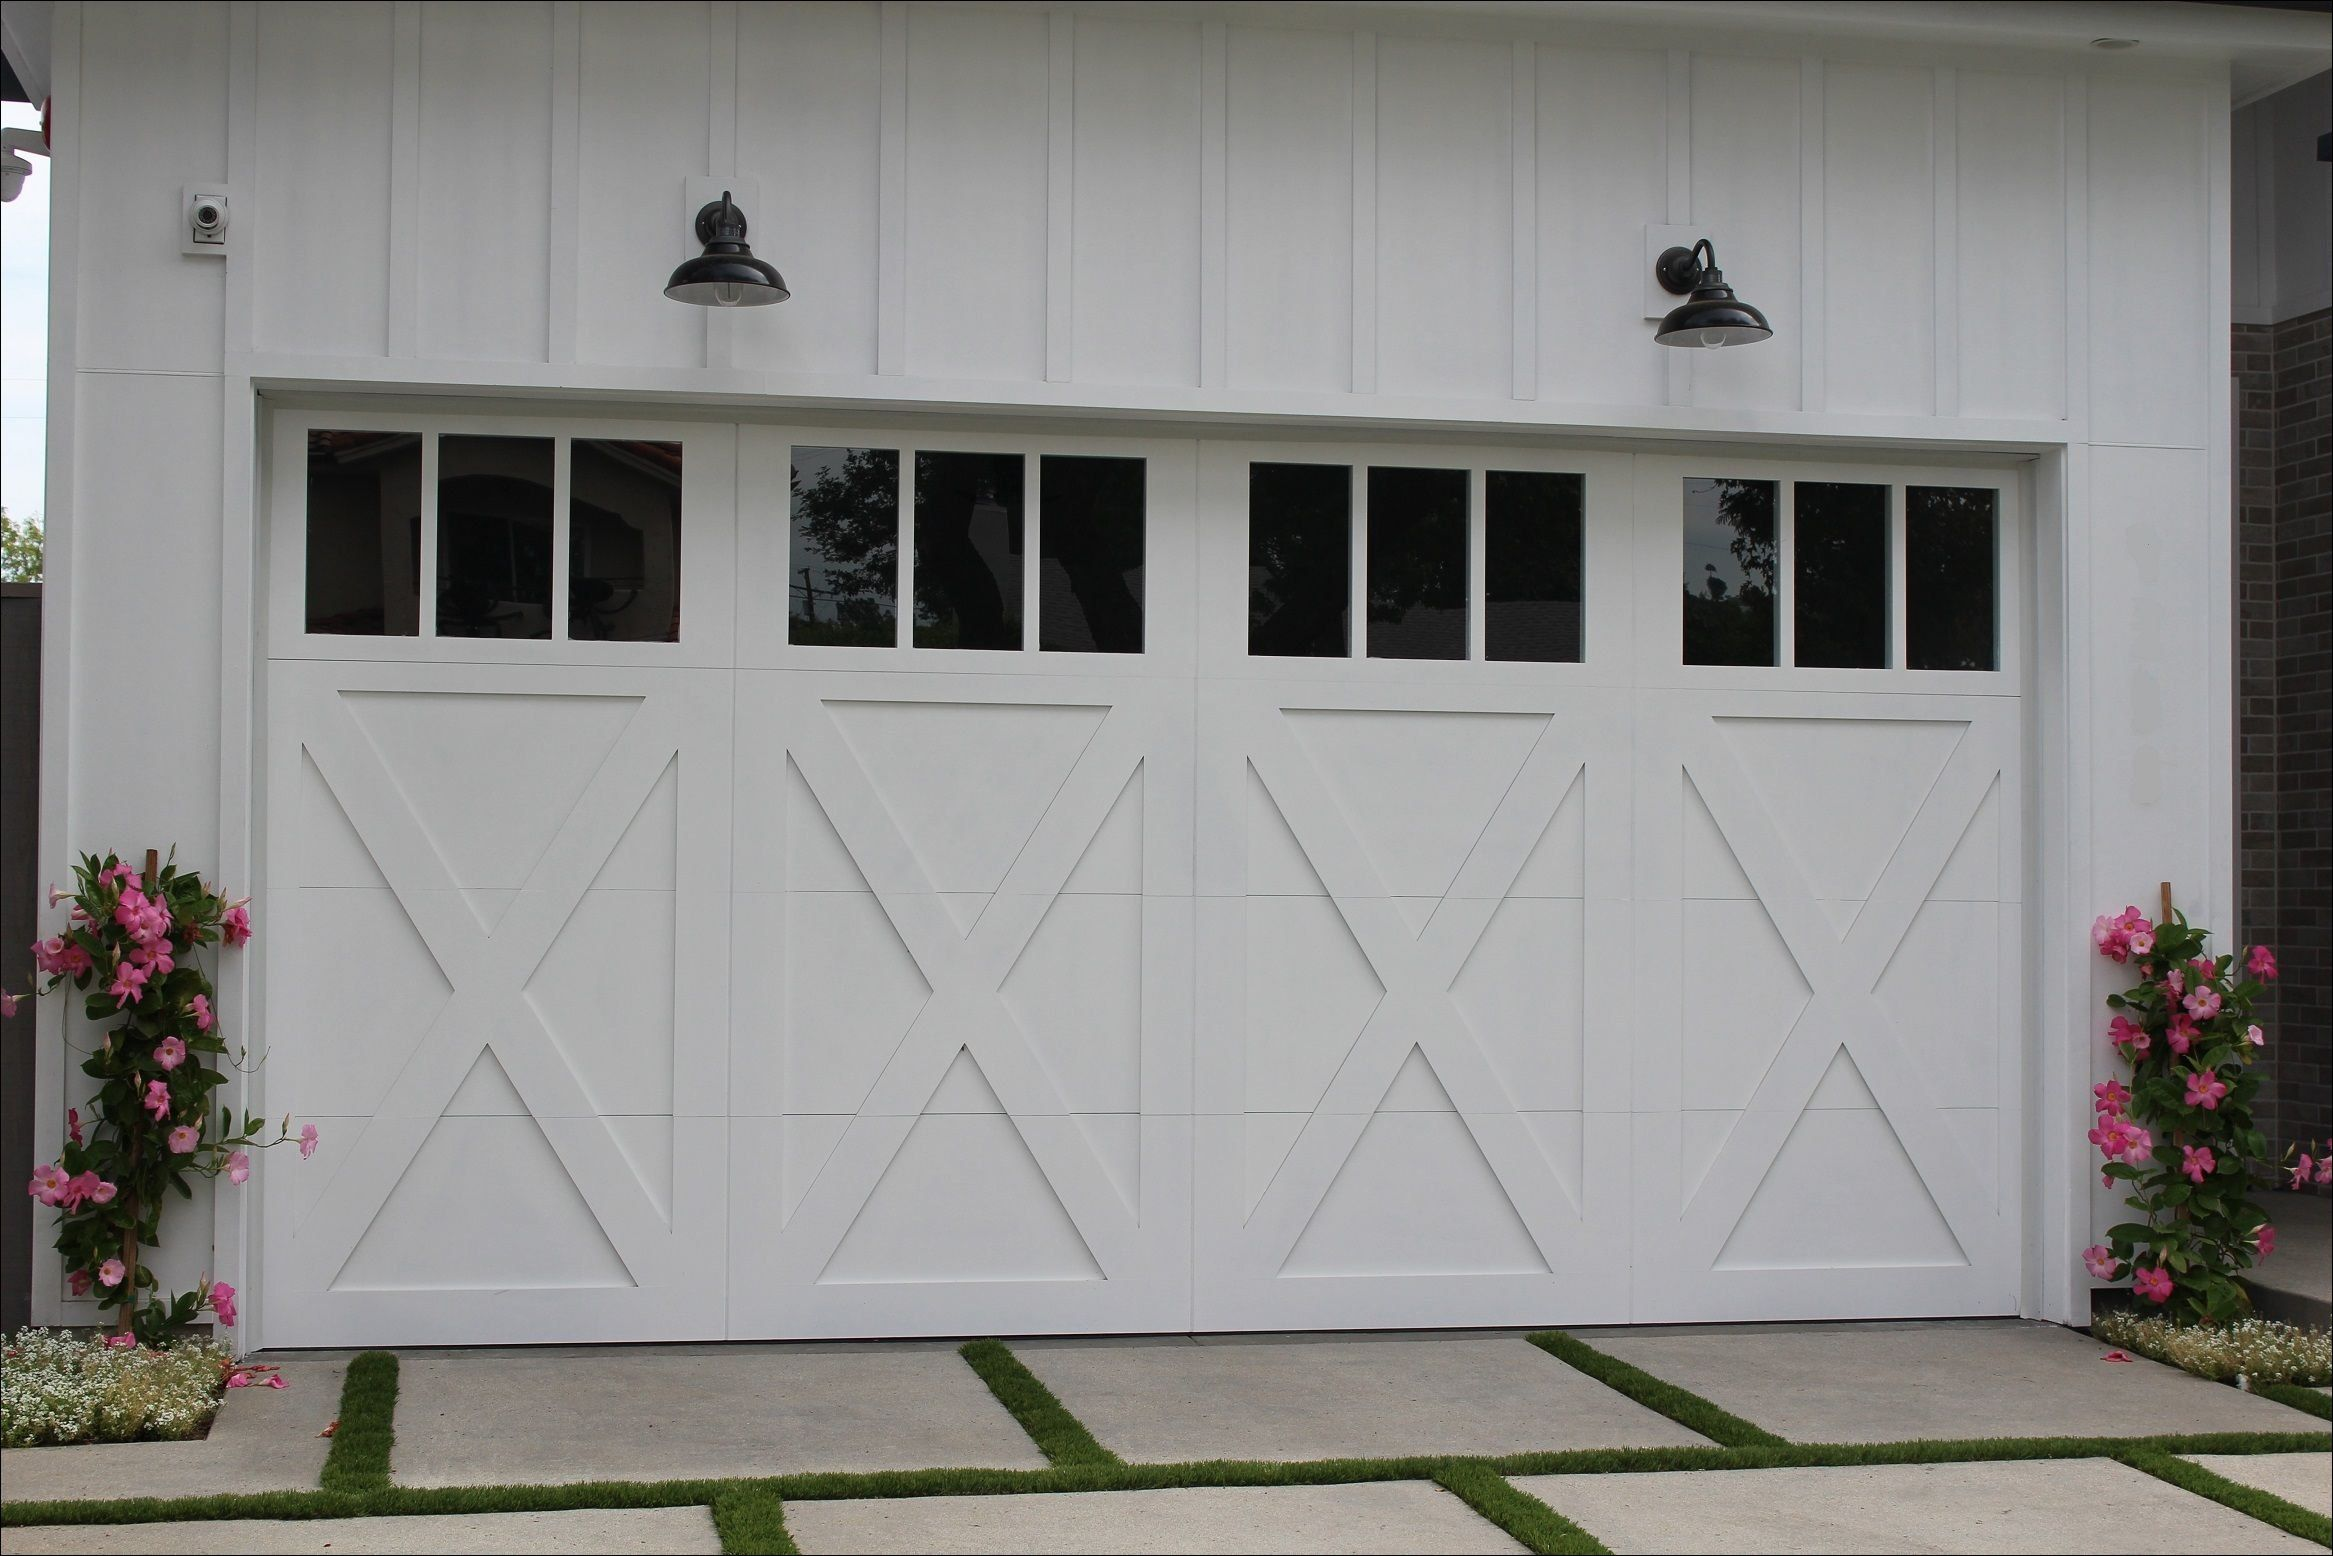 10 X 9 Garage Door Fresh Modern Farmhouse Lincthelendesign Carriage Garage Doors Garage Doors Barn Style Garage Doors